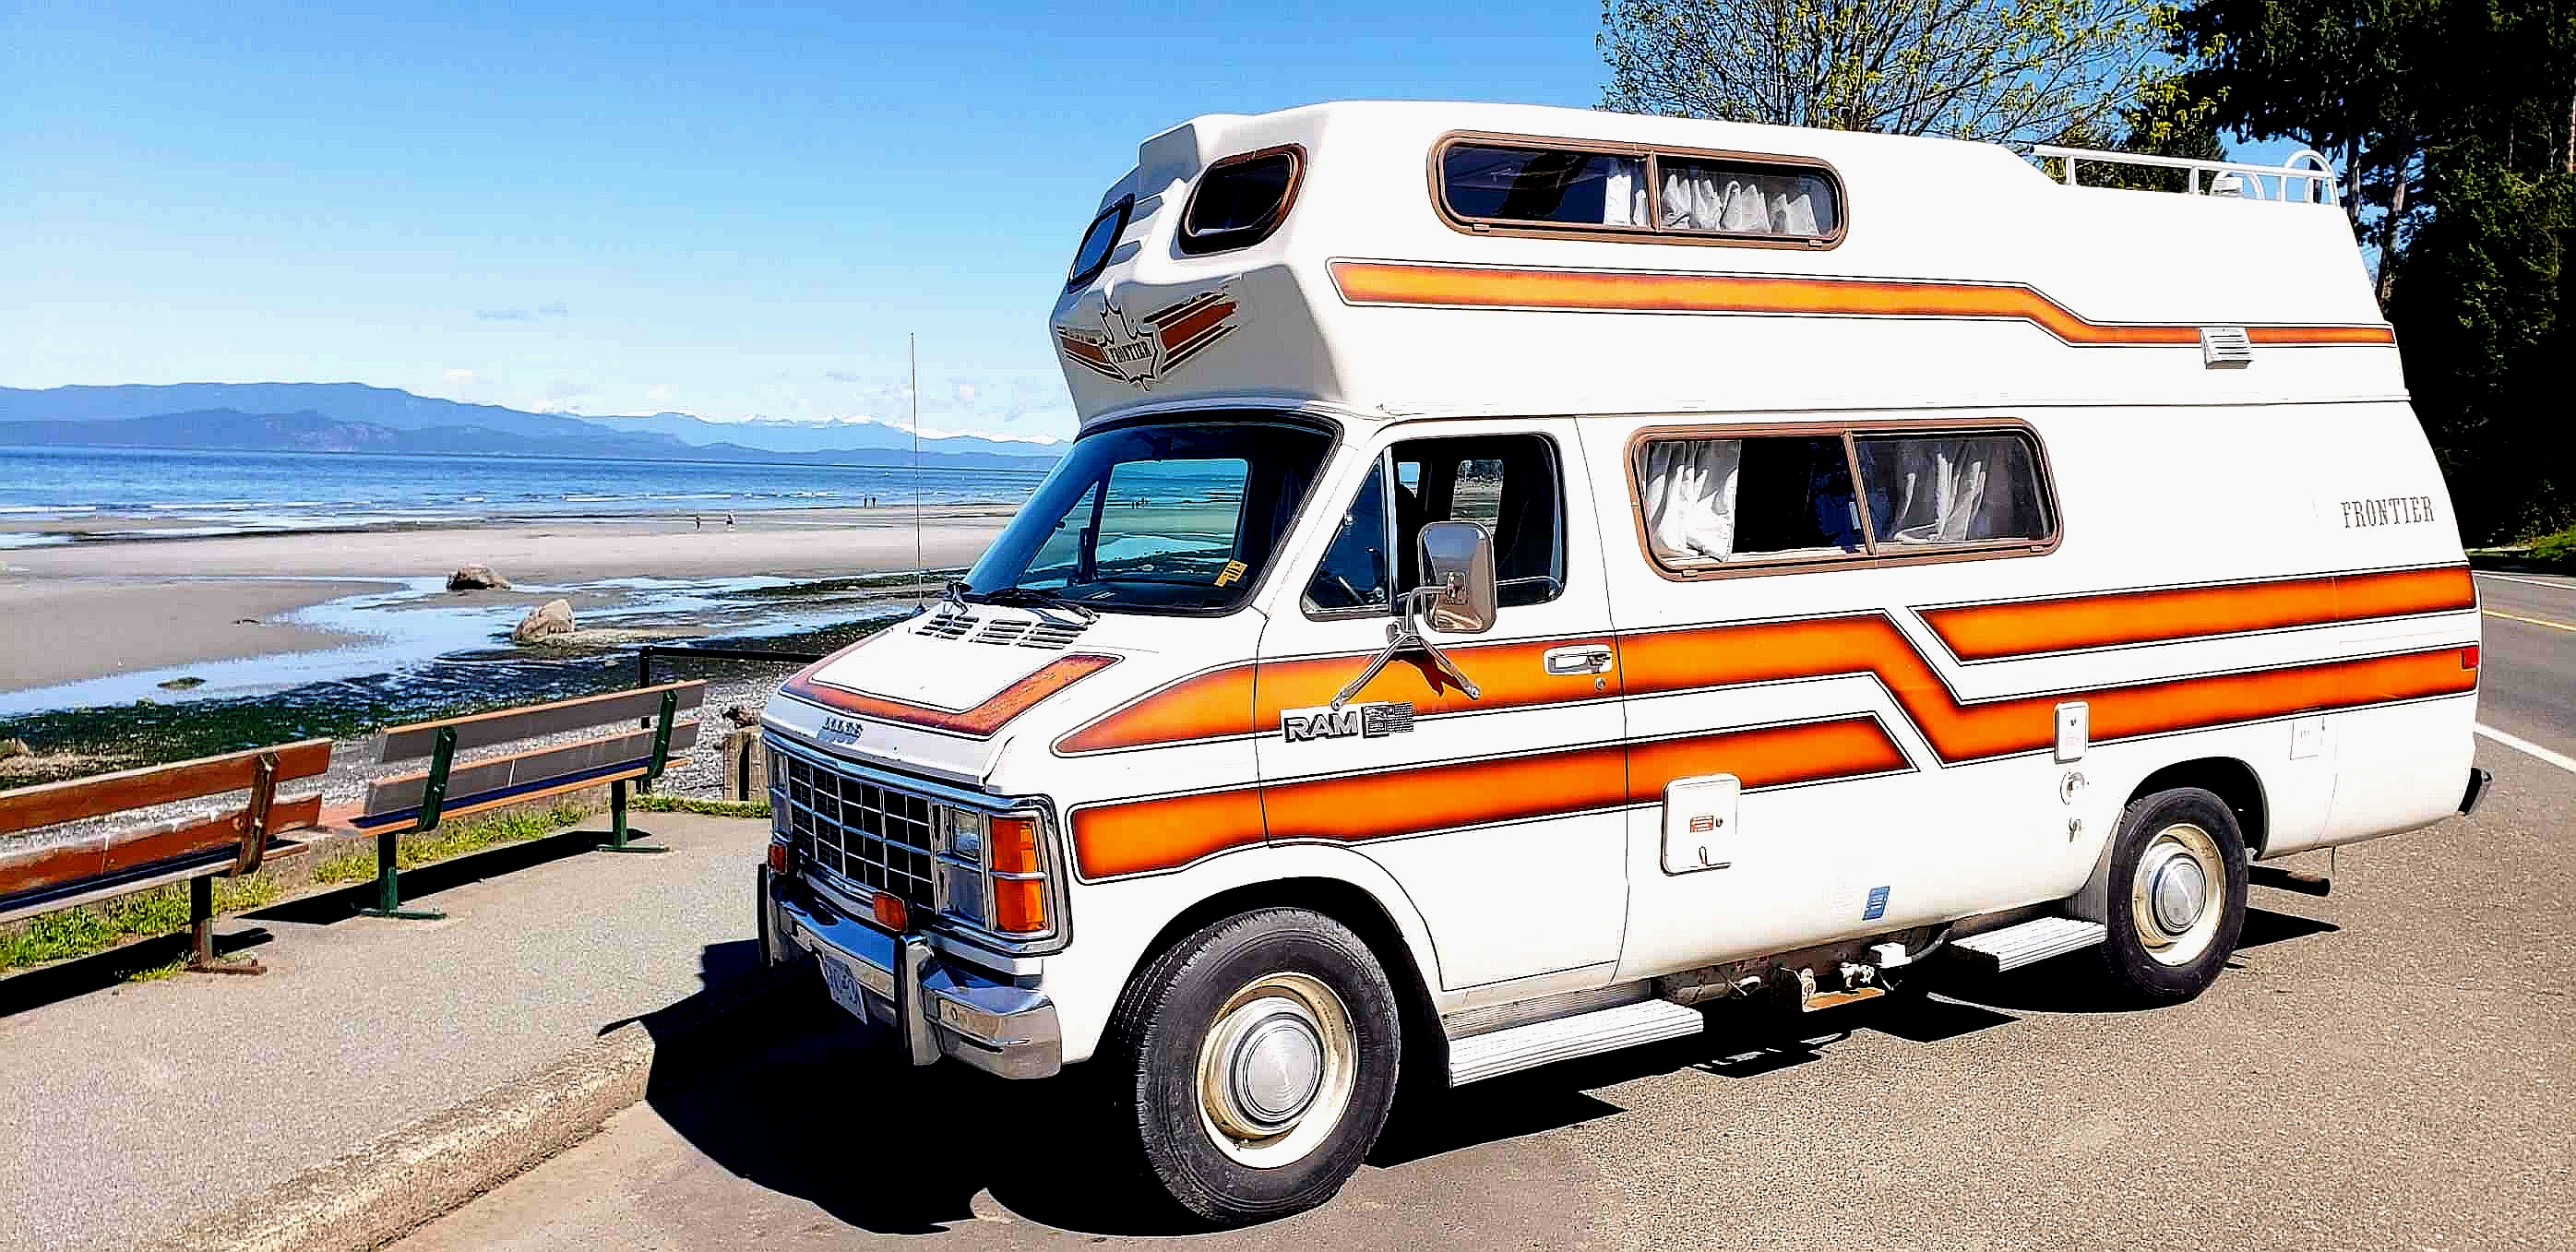 1984 Dodge Other Camper Van Rental In Nanaimo Bc Outdoorsy